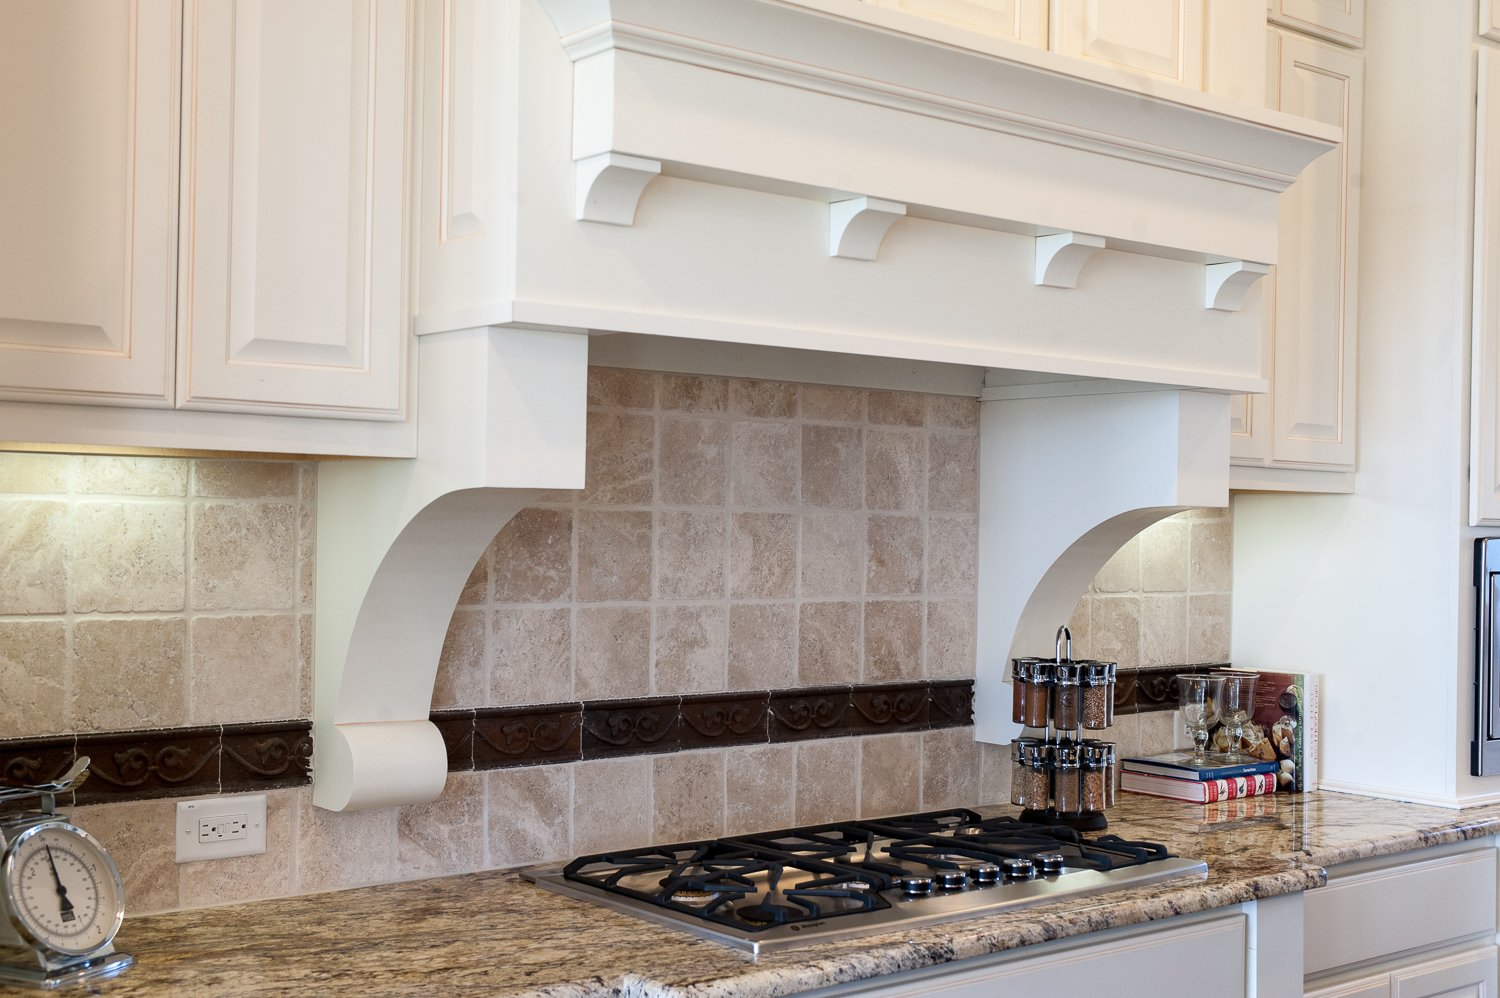 Interior Brackets and Corbels - Interior brackets and corbels are made from hardwoods, including Poplar, Oak, Maple, and Alder. They are used in the kitchen, under bar tops, as well as many other applications. Custom corbels can be made in just a few days. Corbels are sanded smooth and ready to finish. Click Here to Browse…